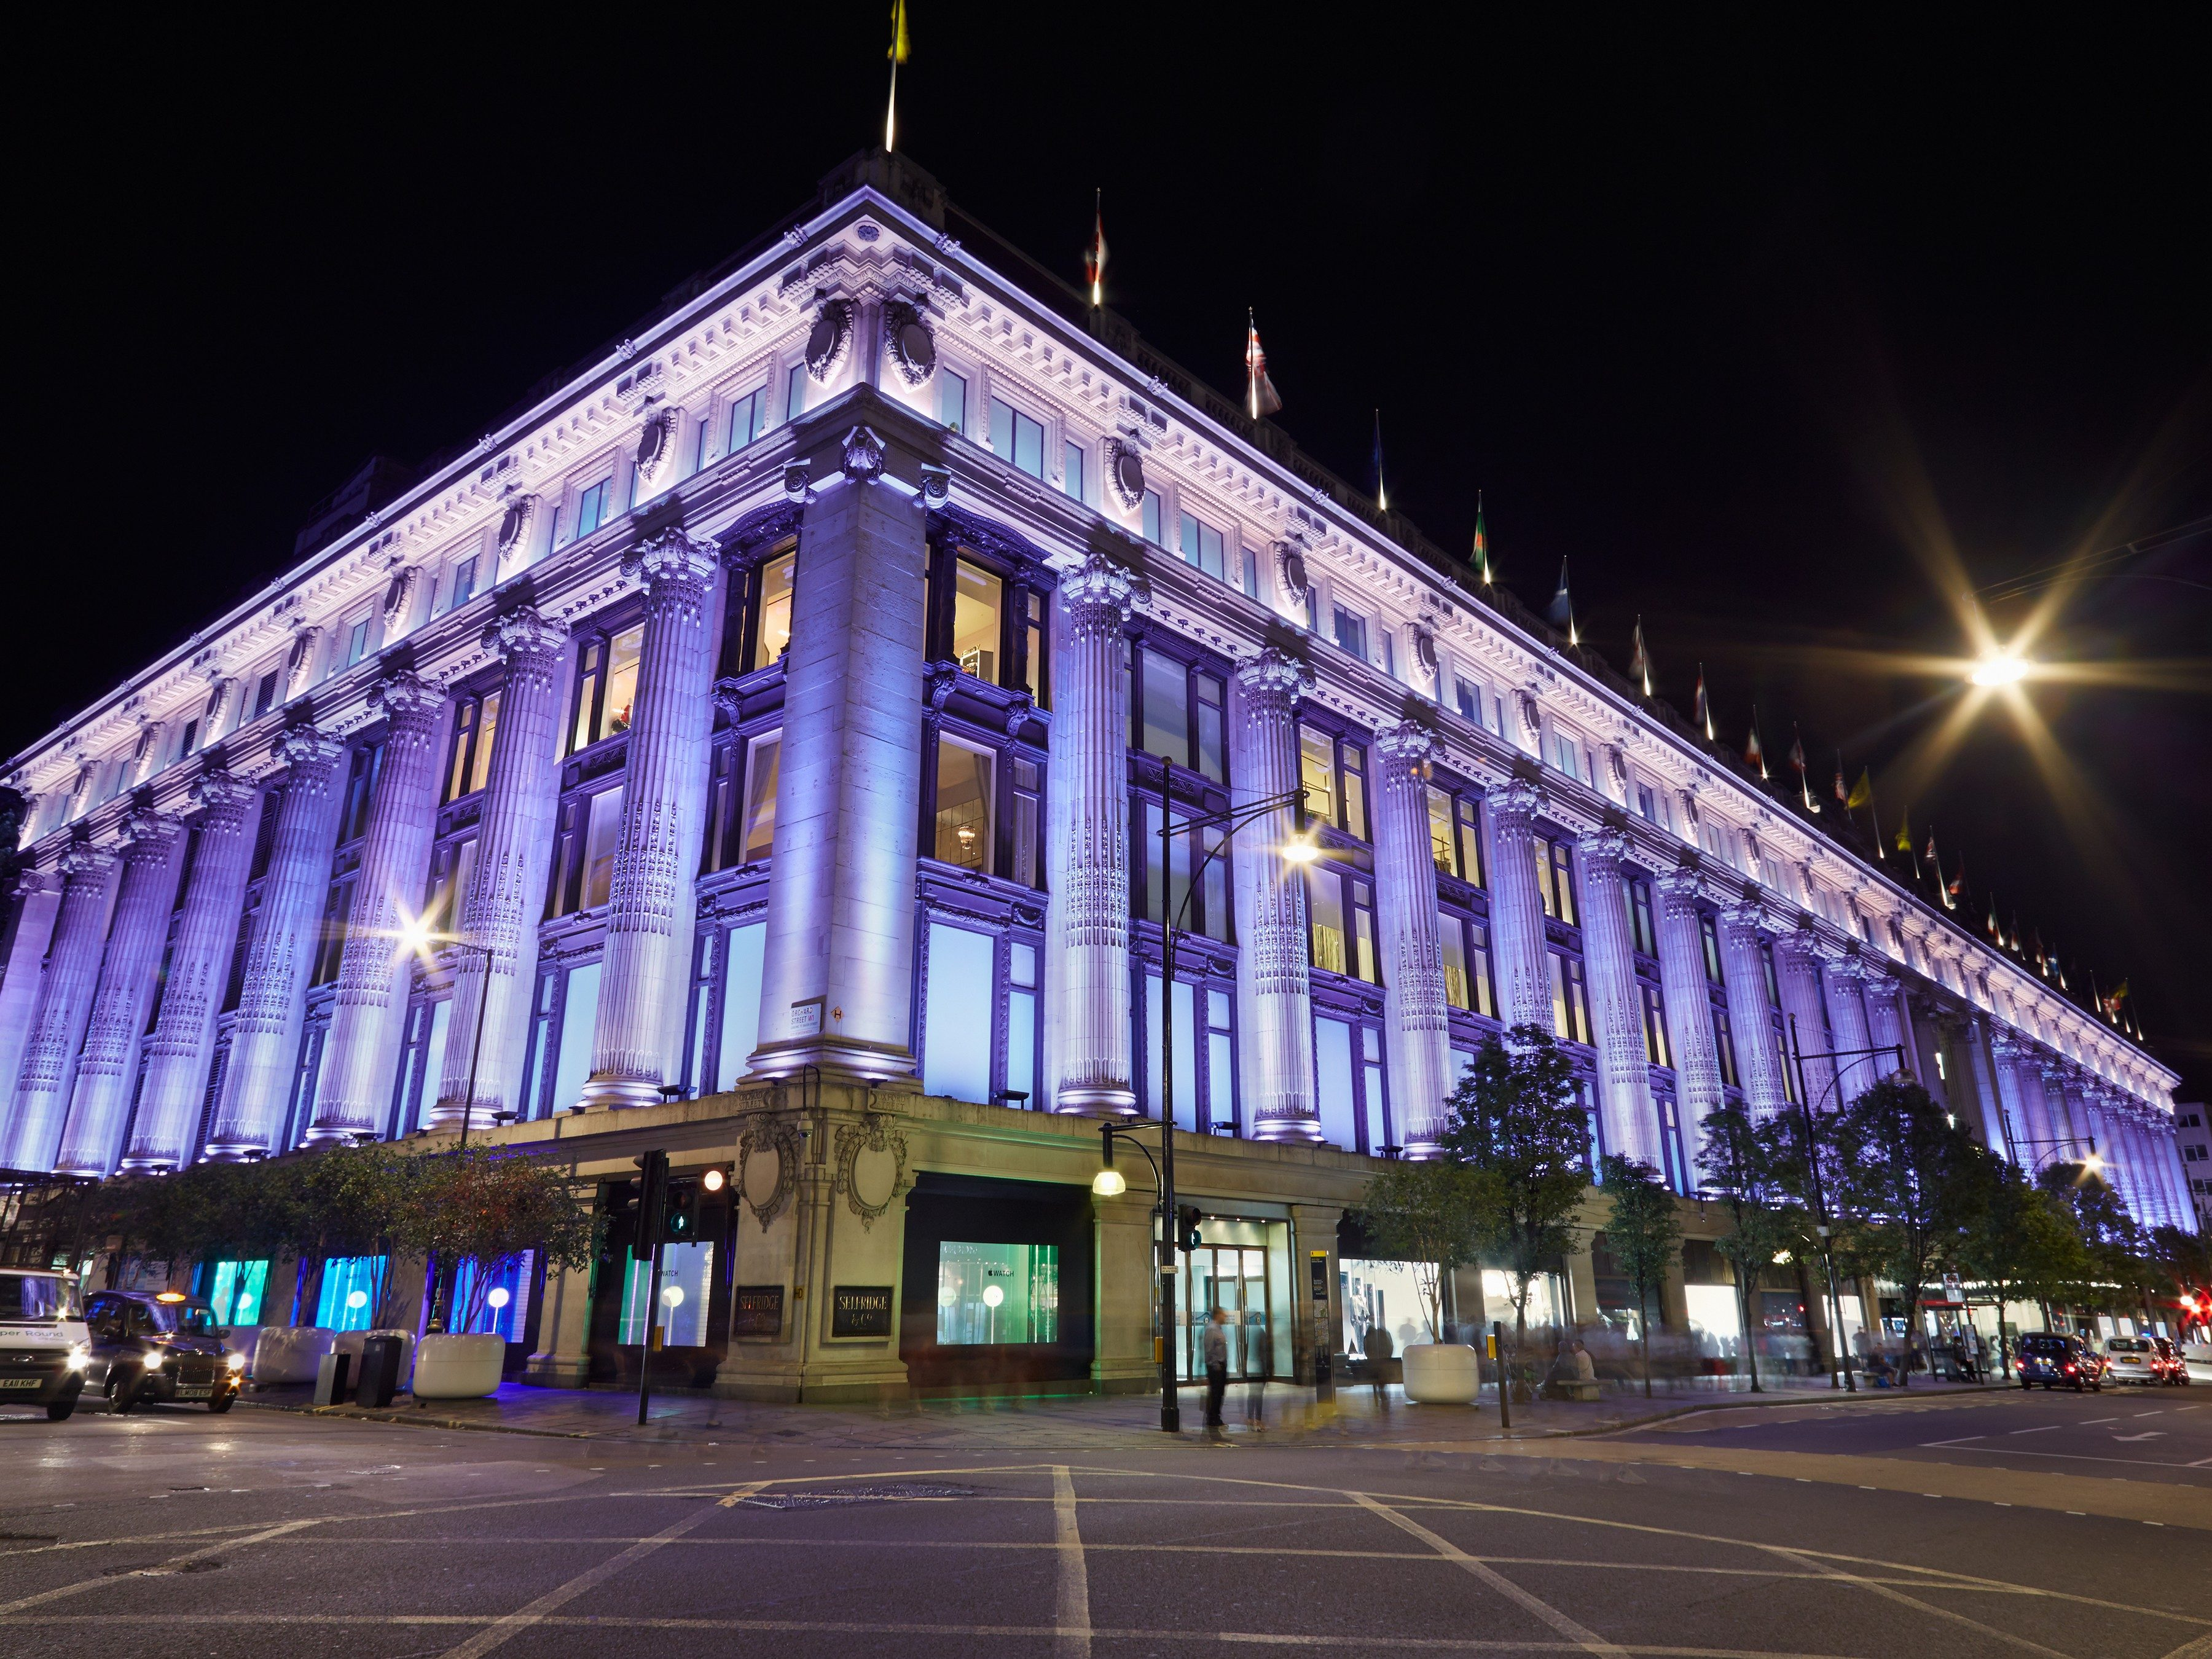 5. Selfridges, London